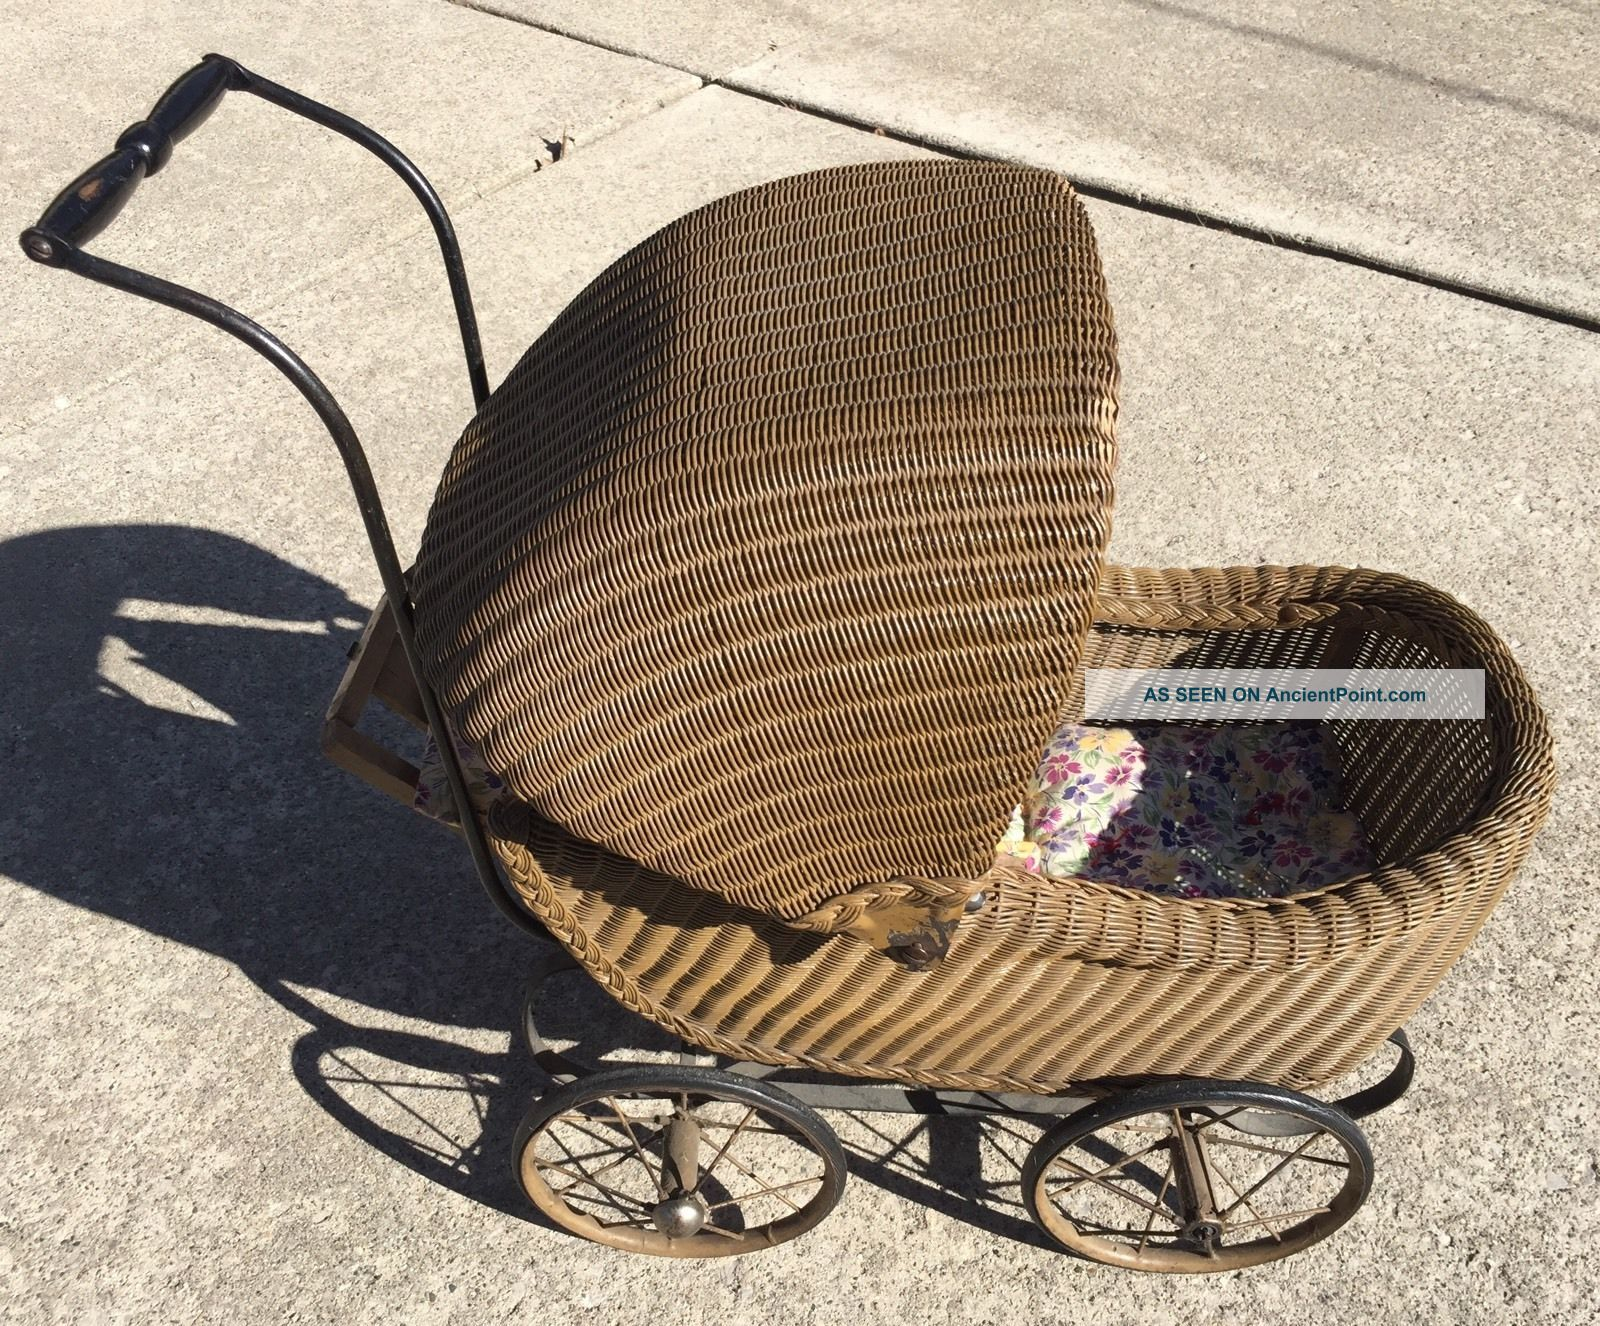 Vintage Wicker Baby Doll Carriage Buggy Great Store Display Or Movie Tv Prop Baby Carriages & Buggies photo